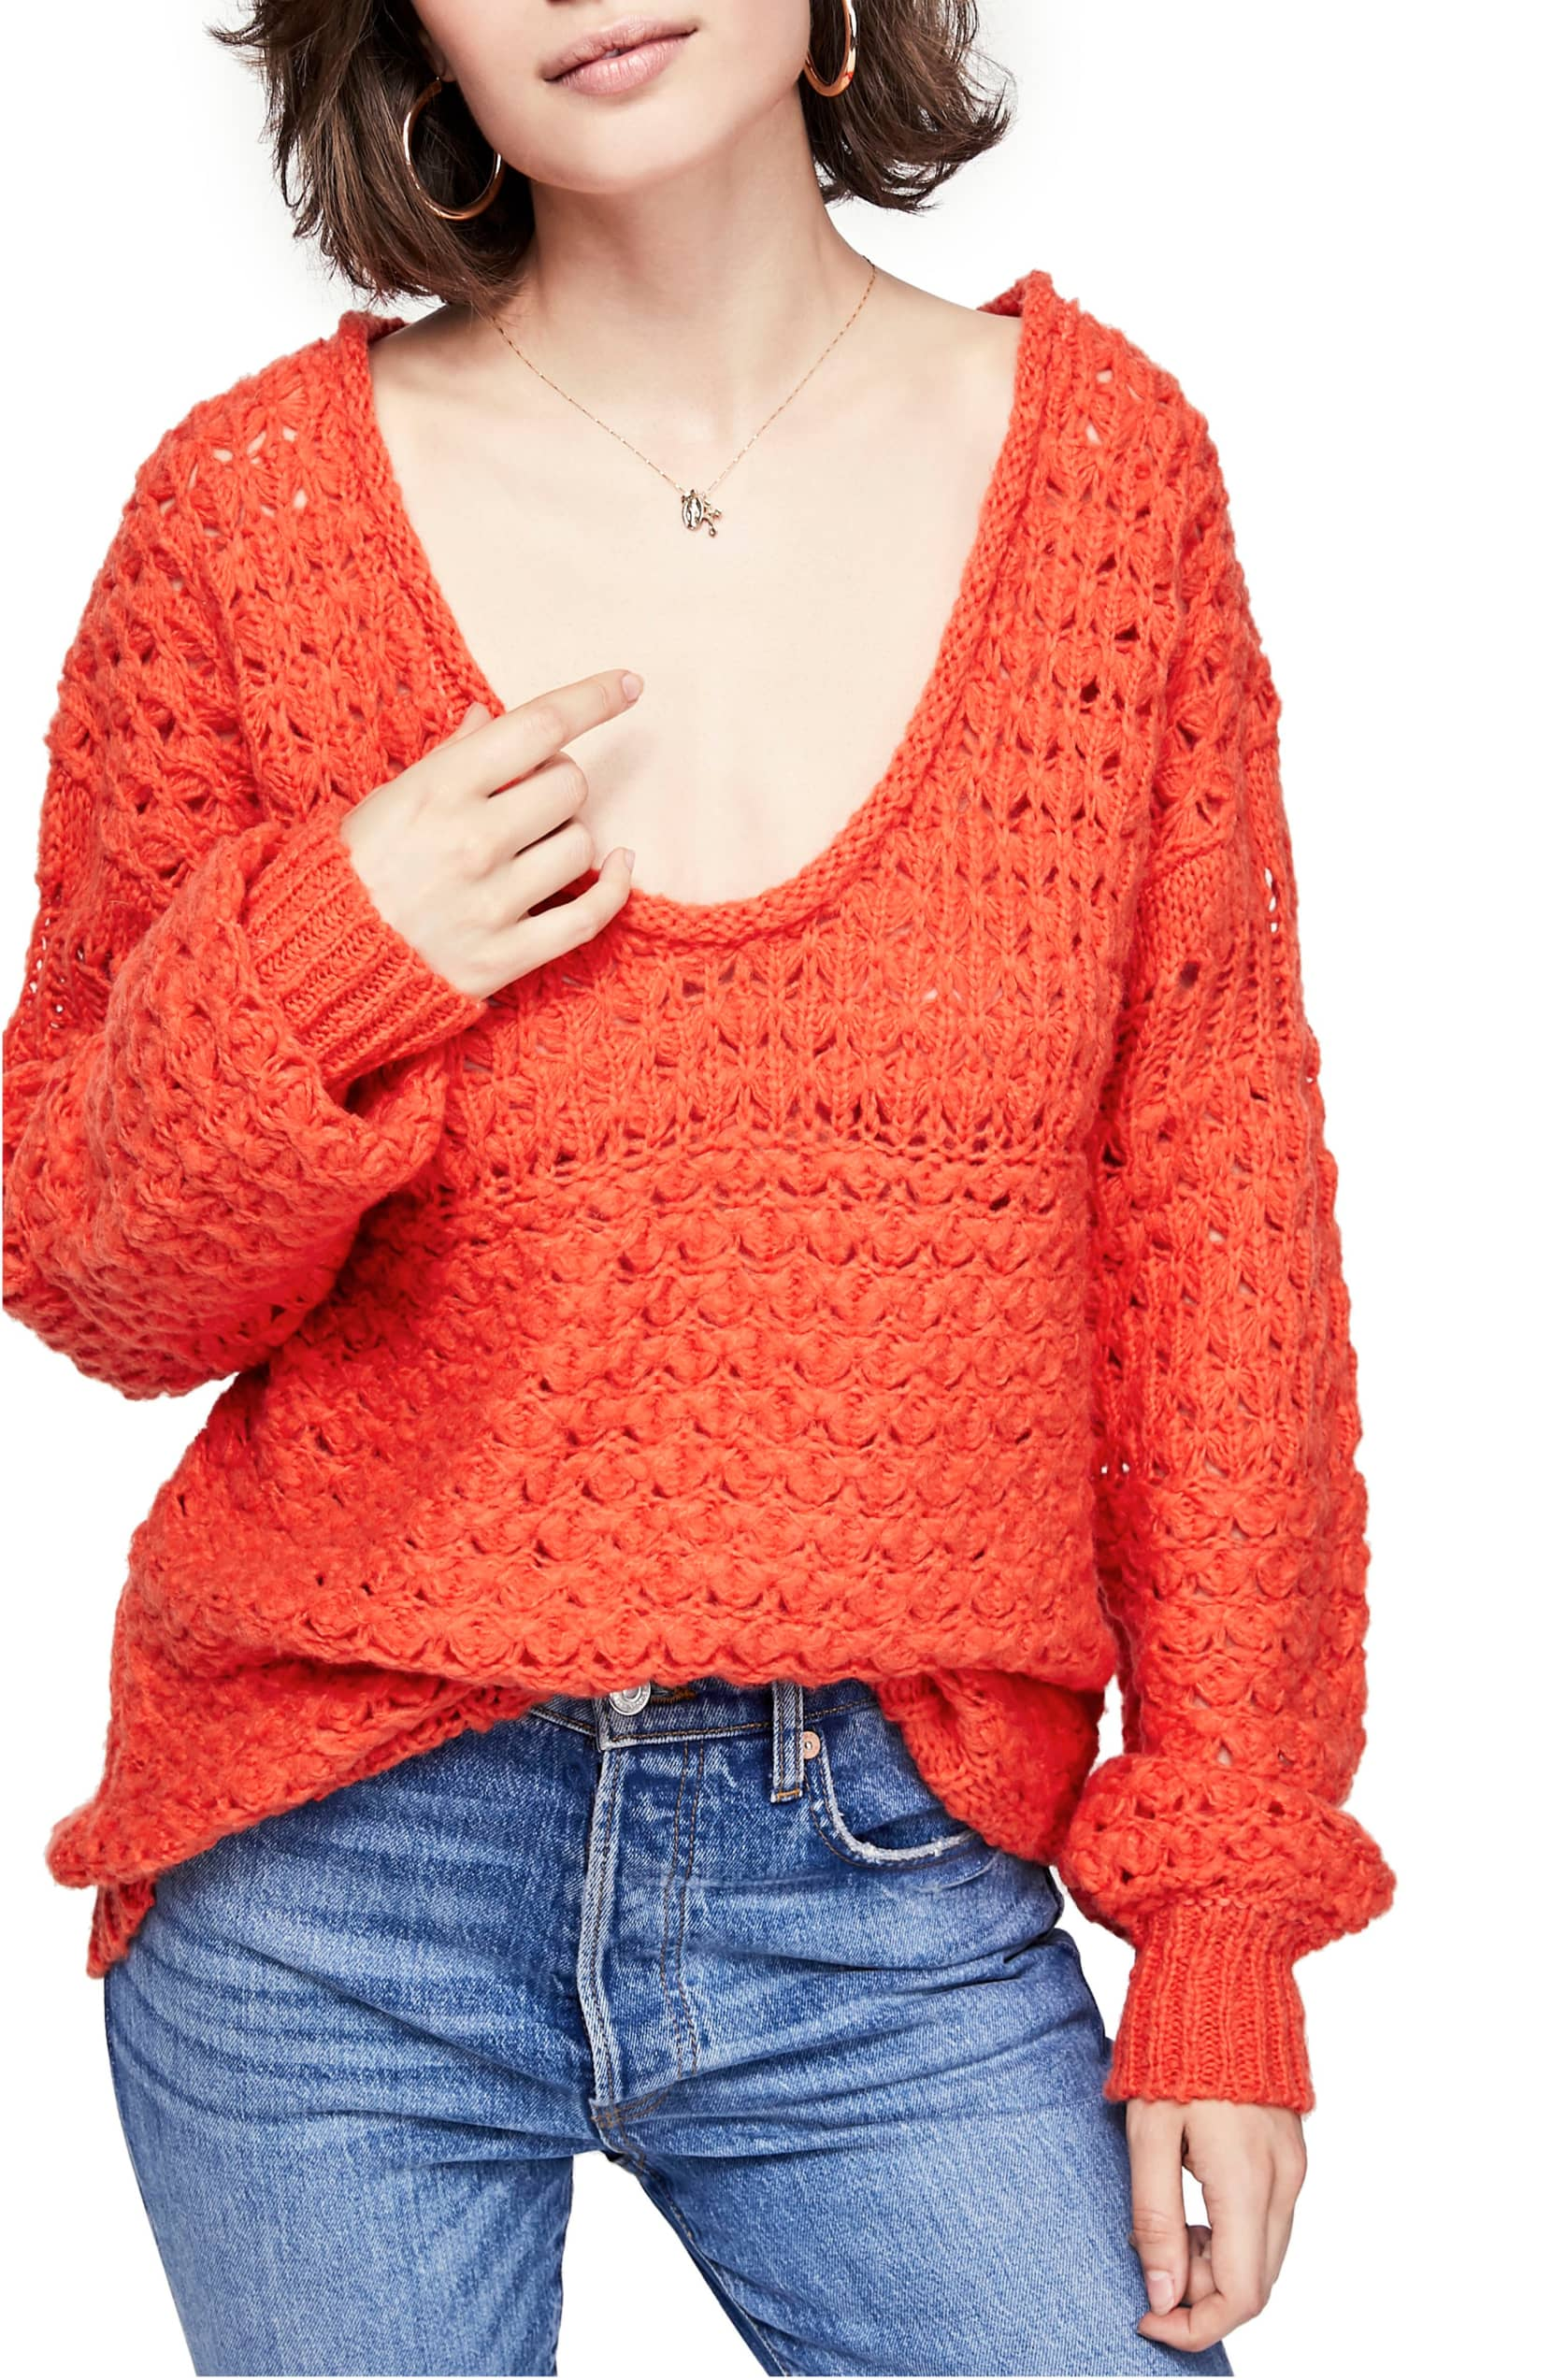 red free people sweater